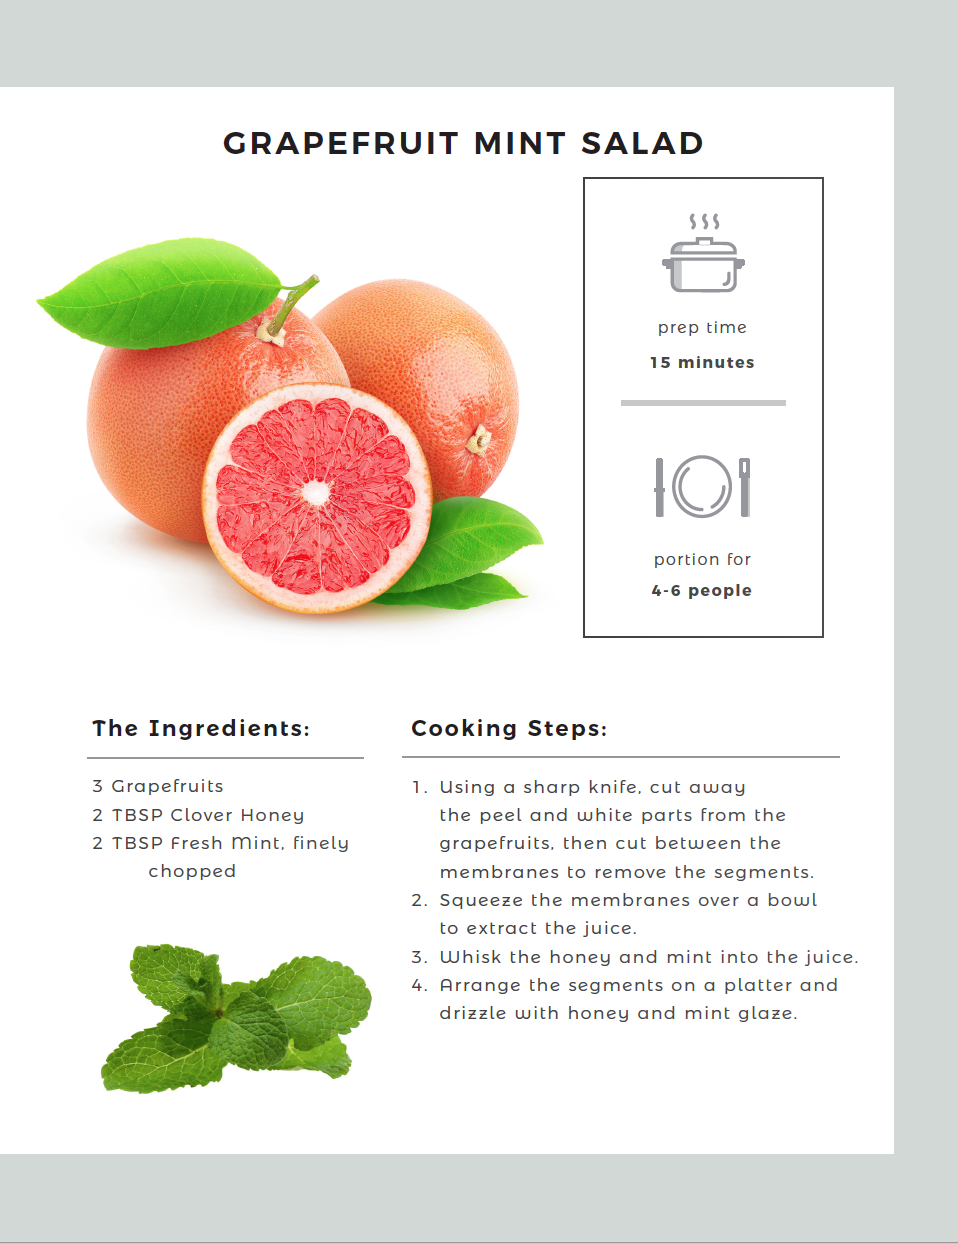 Grapefruit Mint Salad recipe card